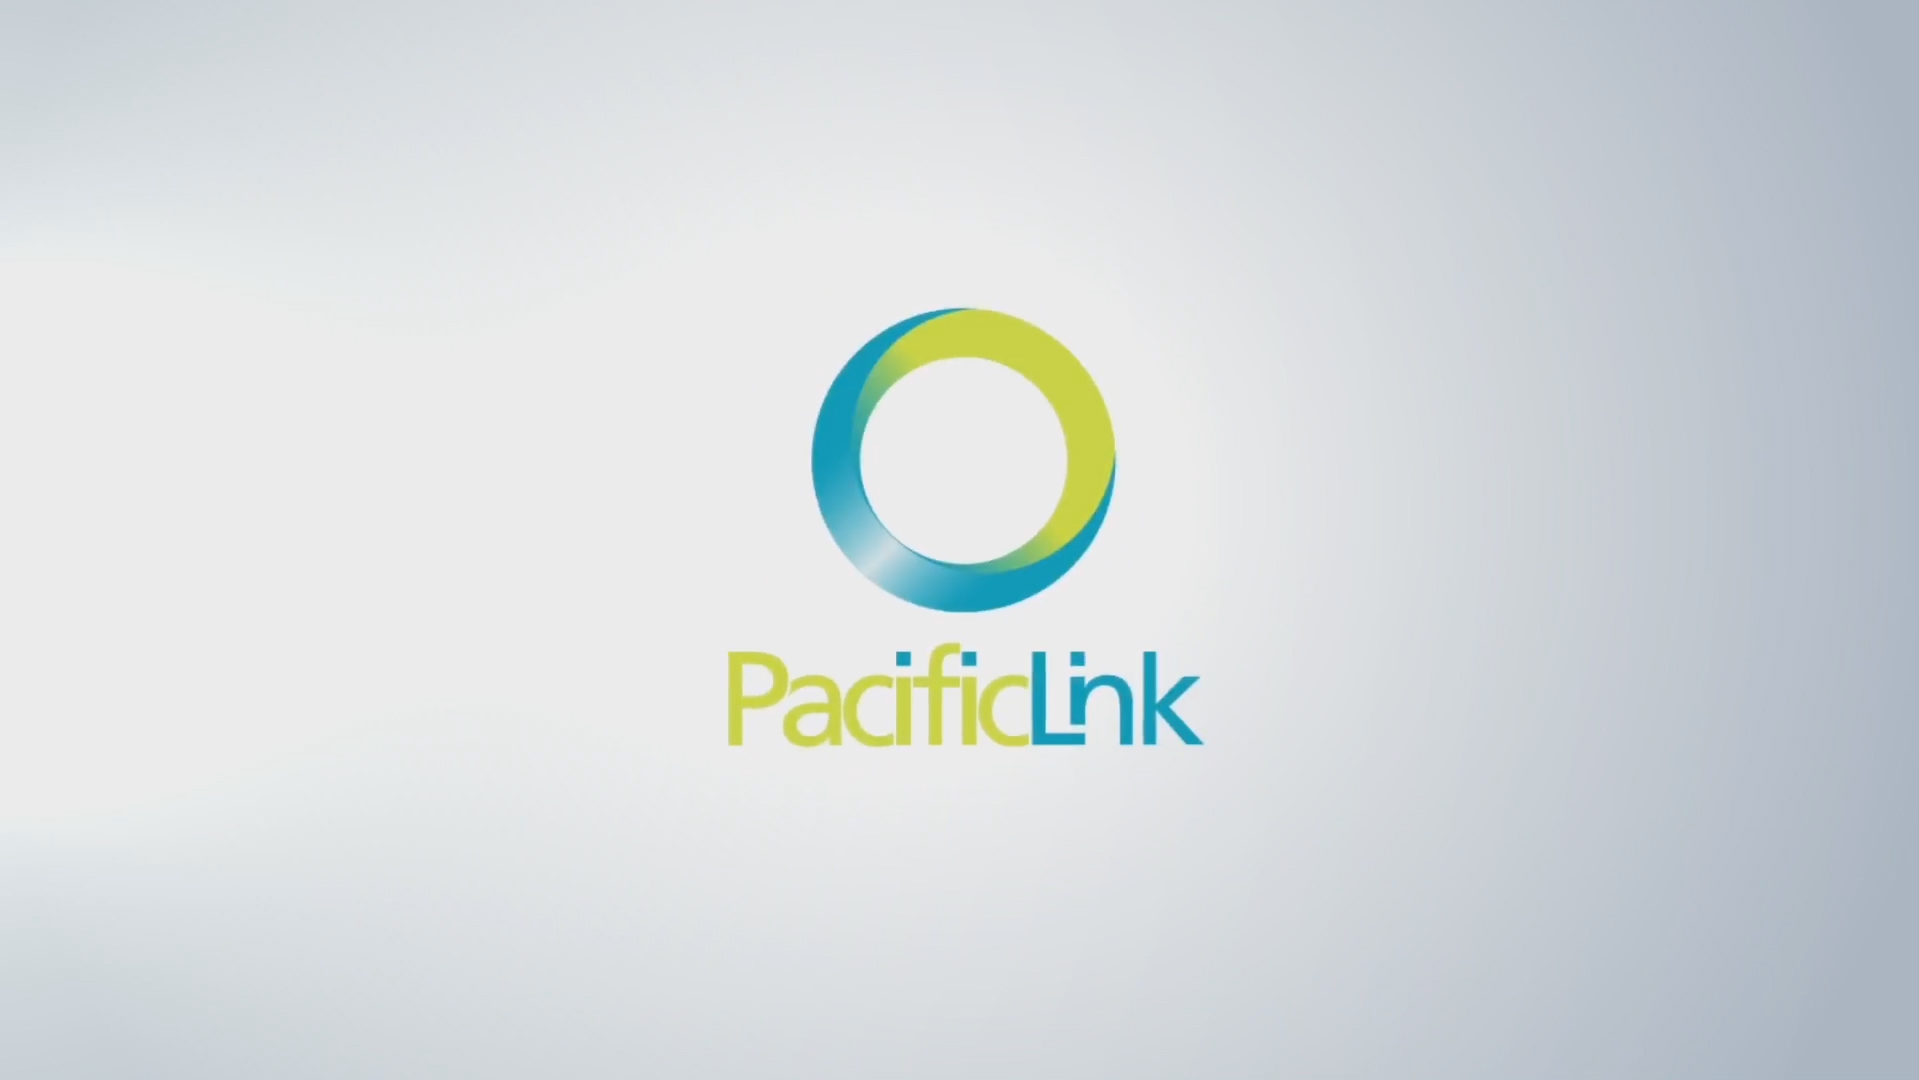 PacificLink Showreel 2015